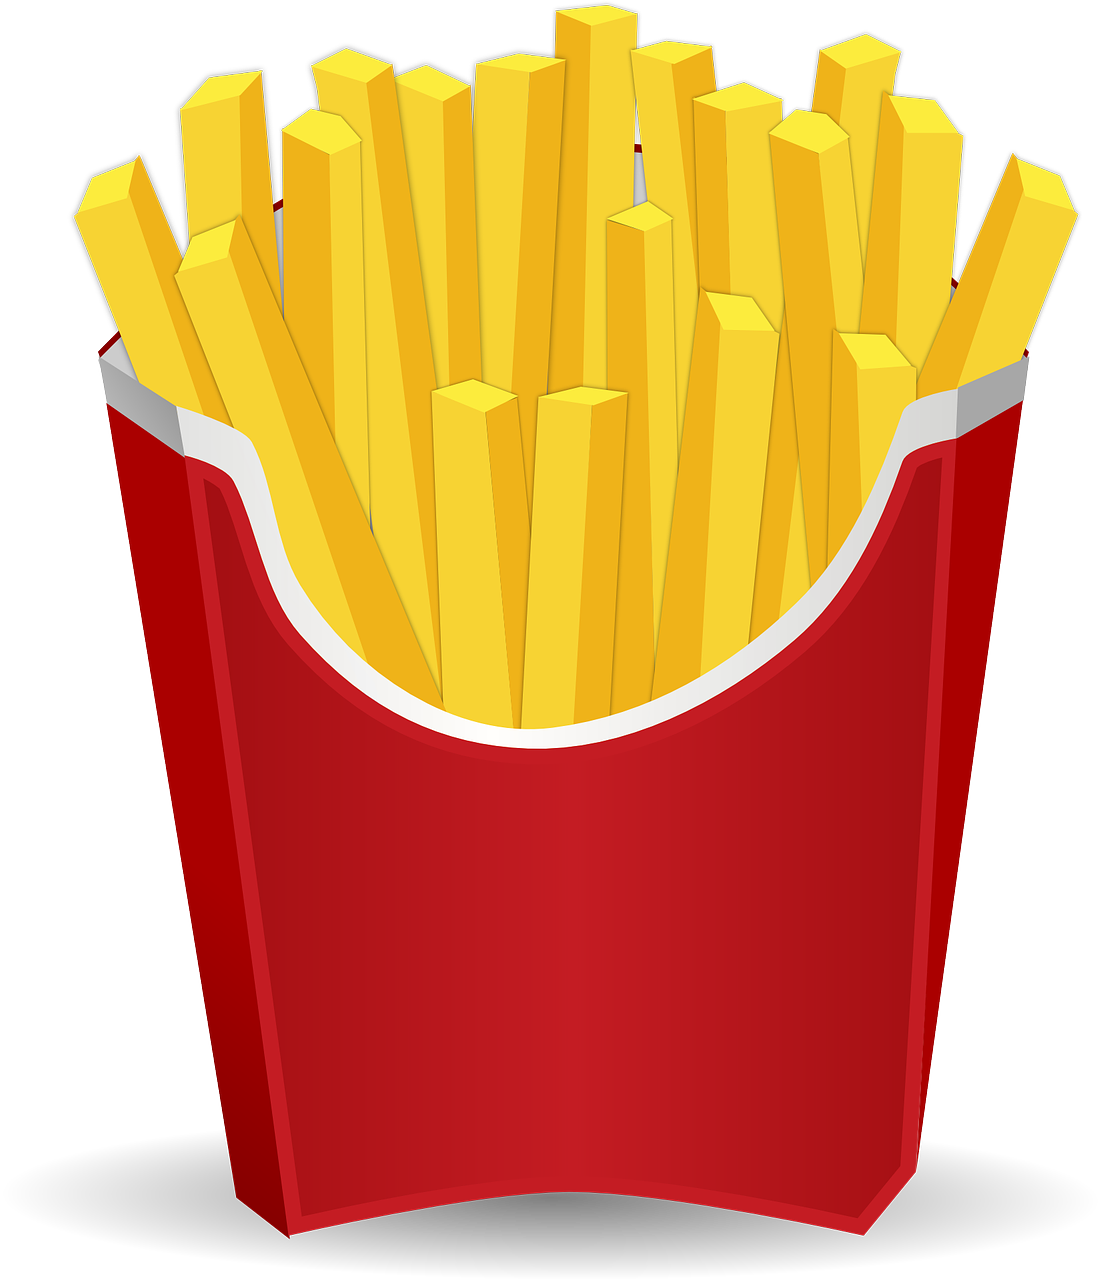 chips french fries. Moving clipart food